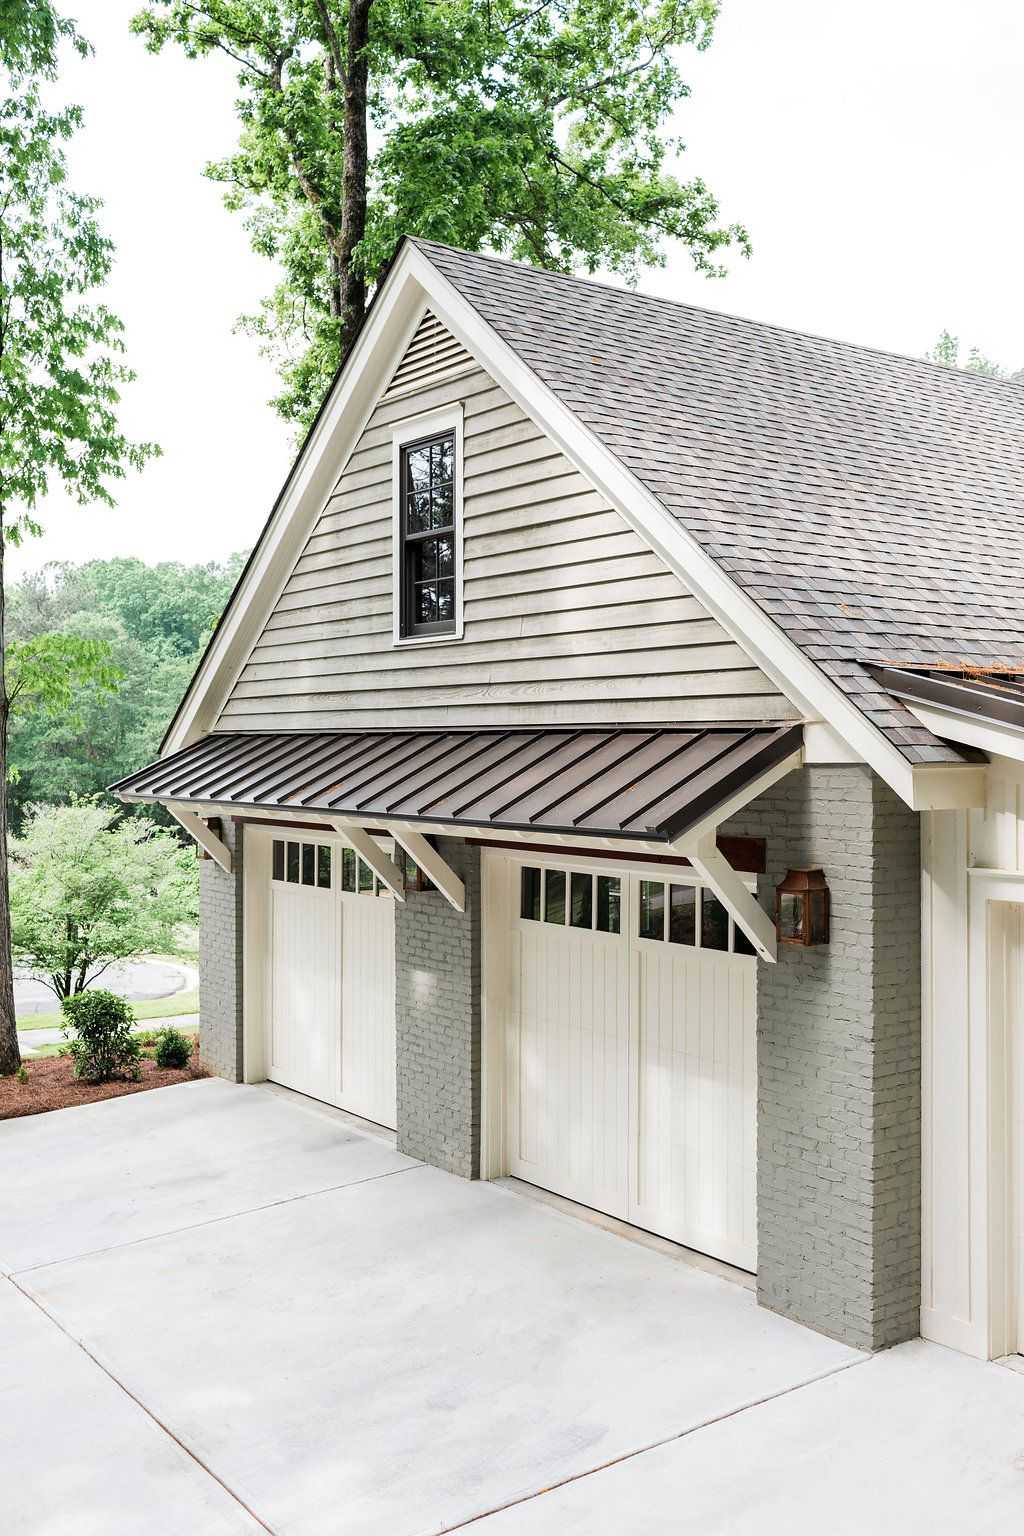 Sage Green Painted Brick Home With Separate Garage Awning Over The Garage Doors Lantern Sconces On Either Si Garage Door Design House Awnings Garage Design